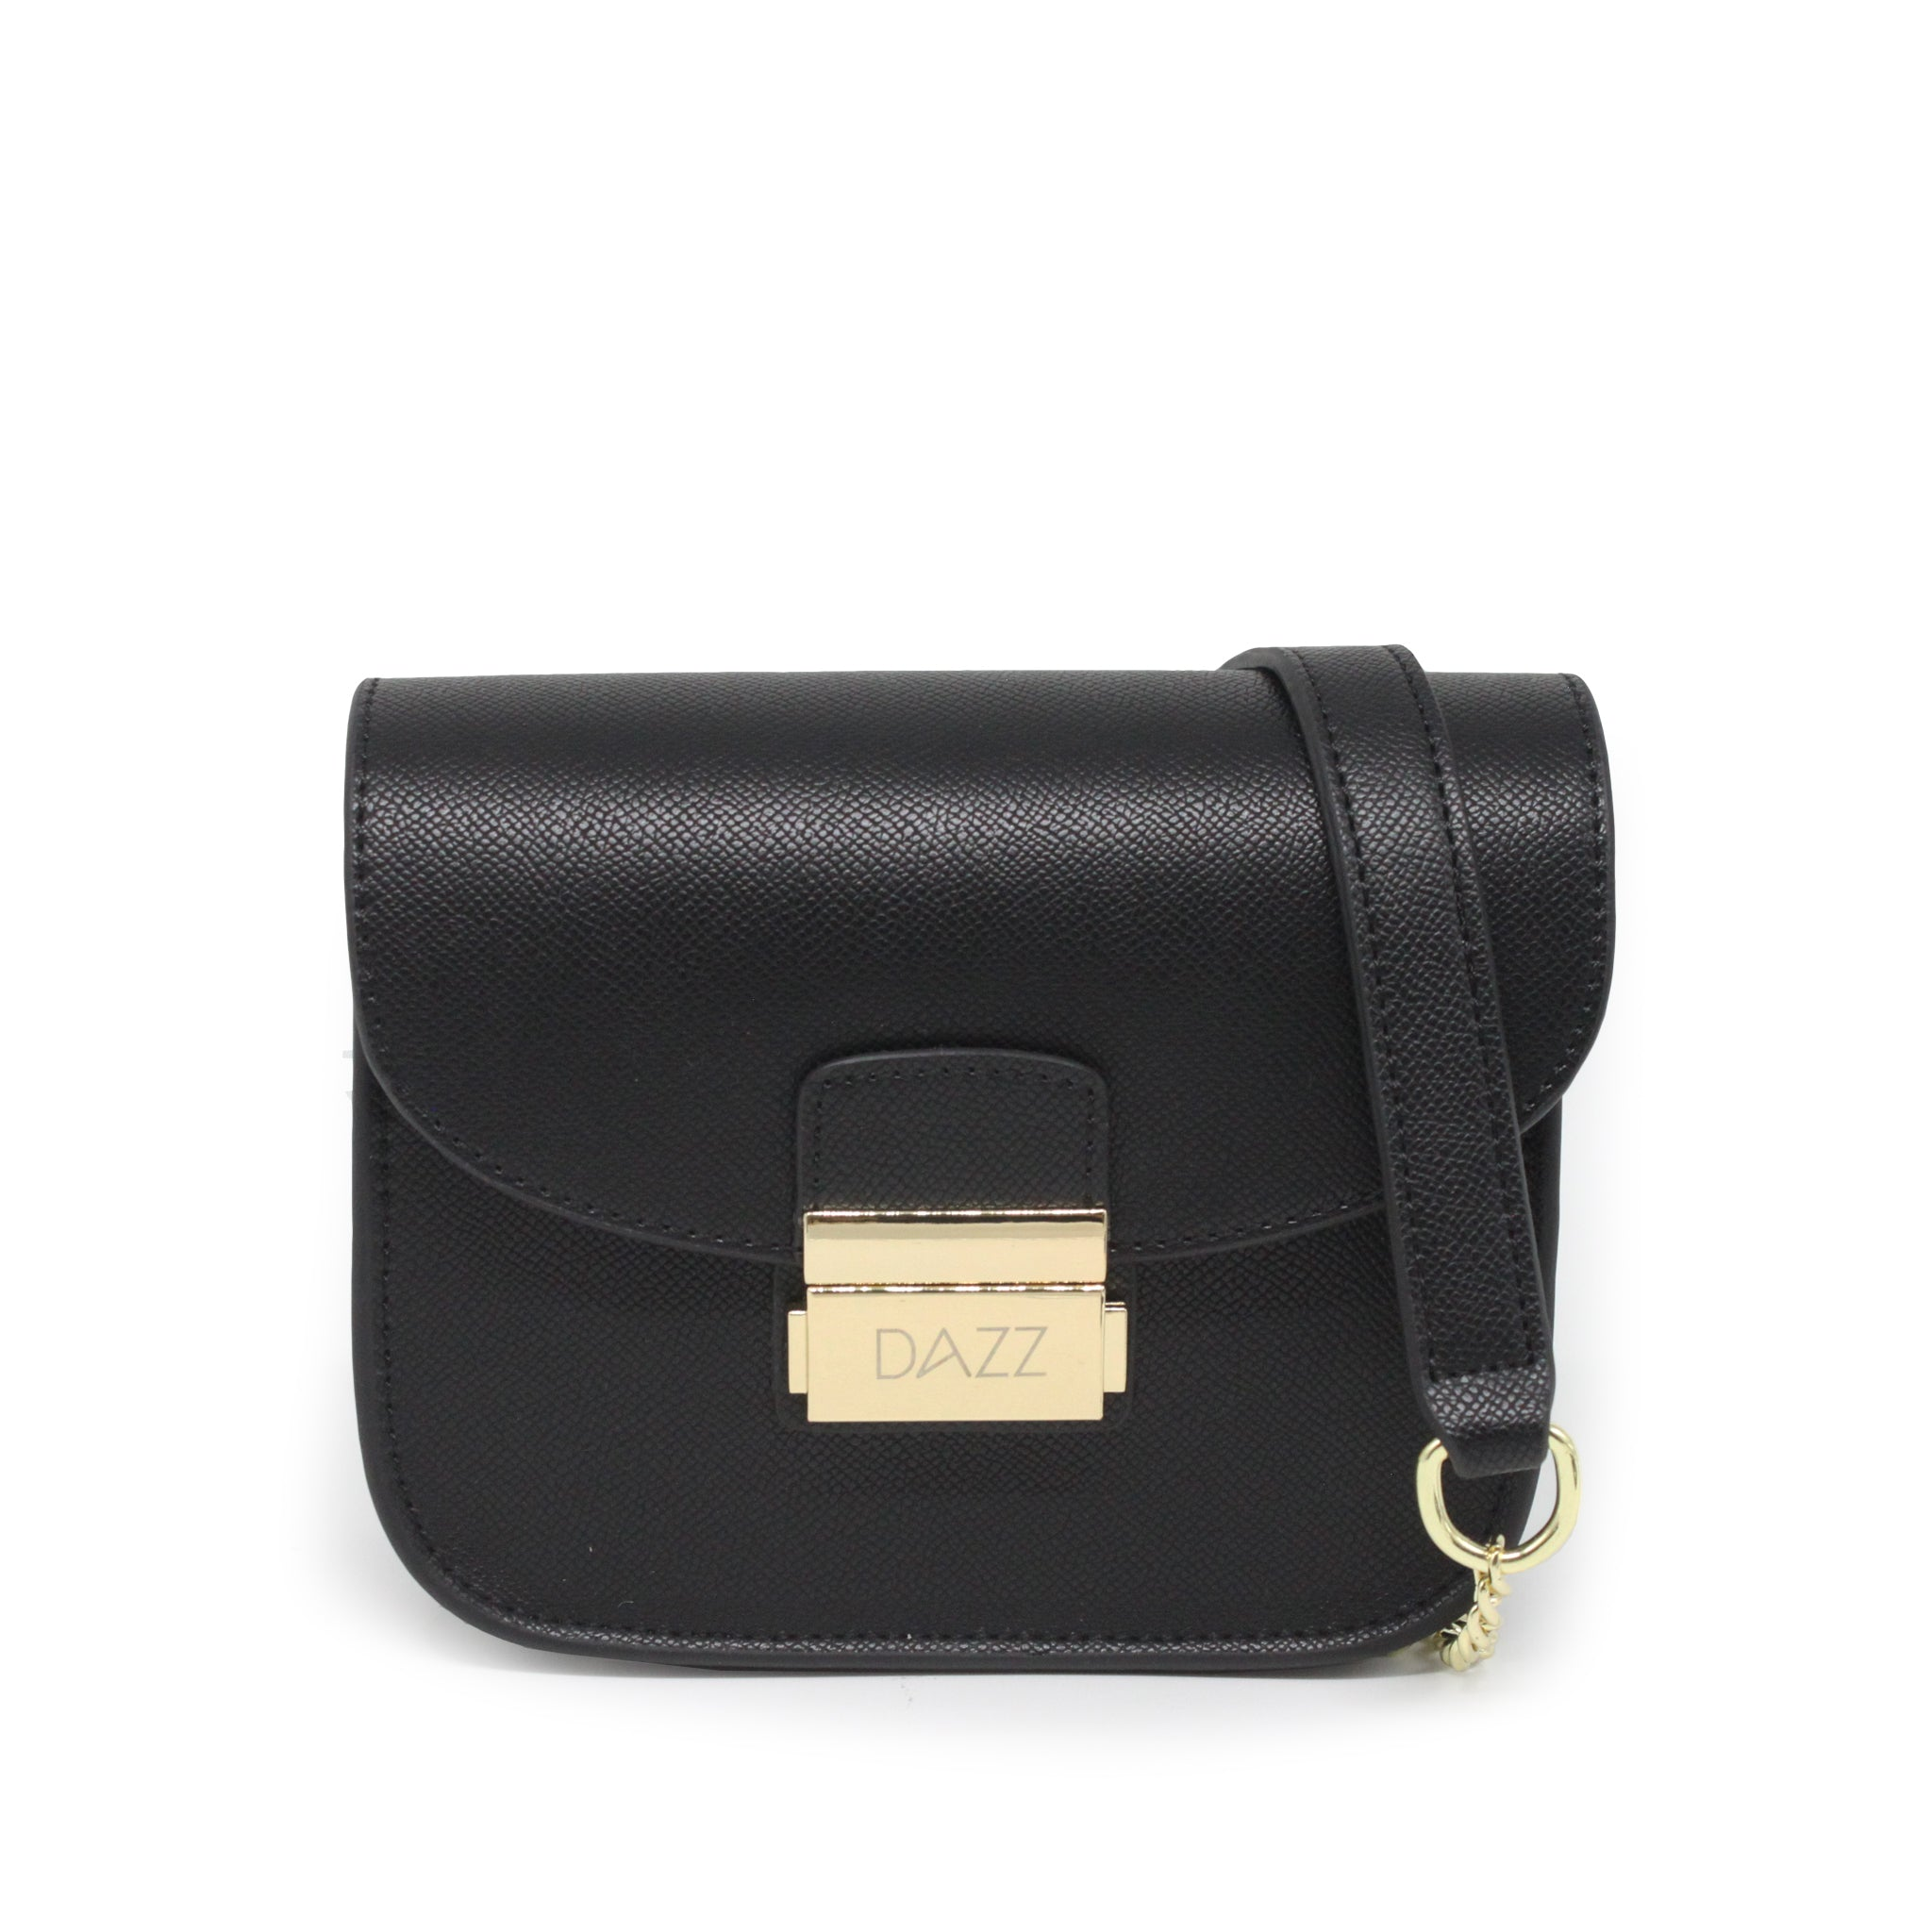 Interchangeable 2-Flaps Crossbody Bag - Black